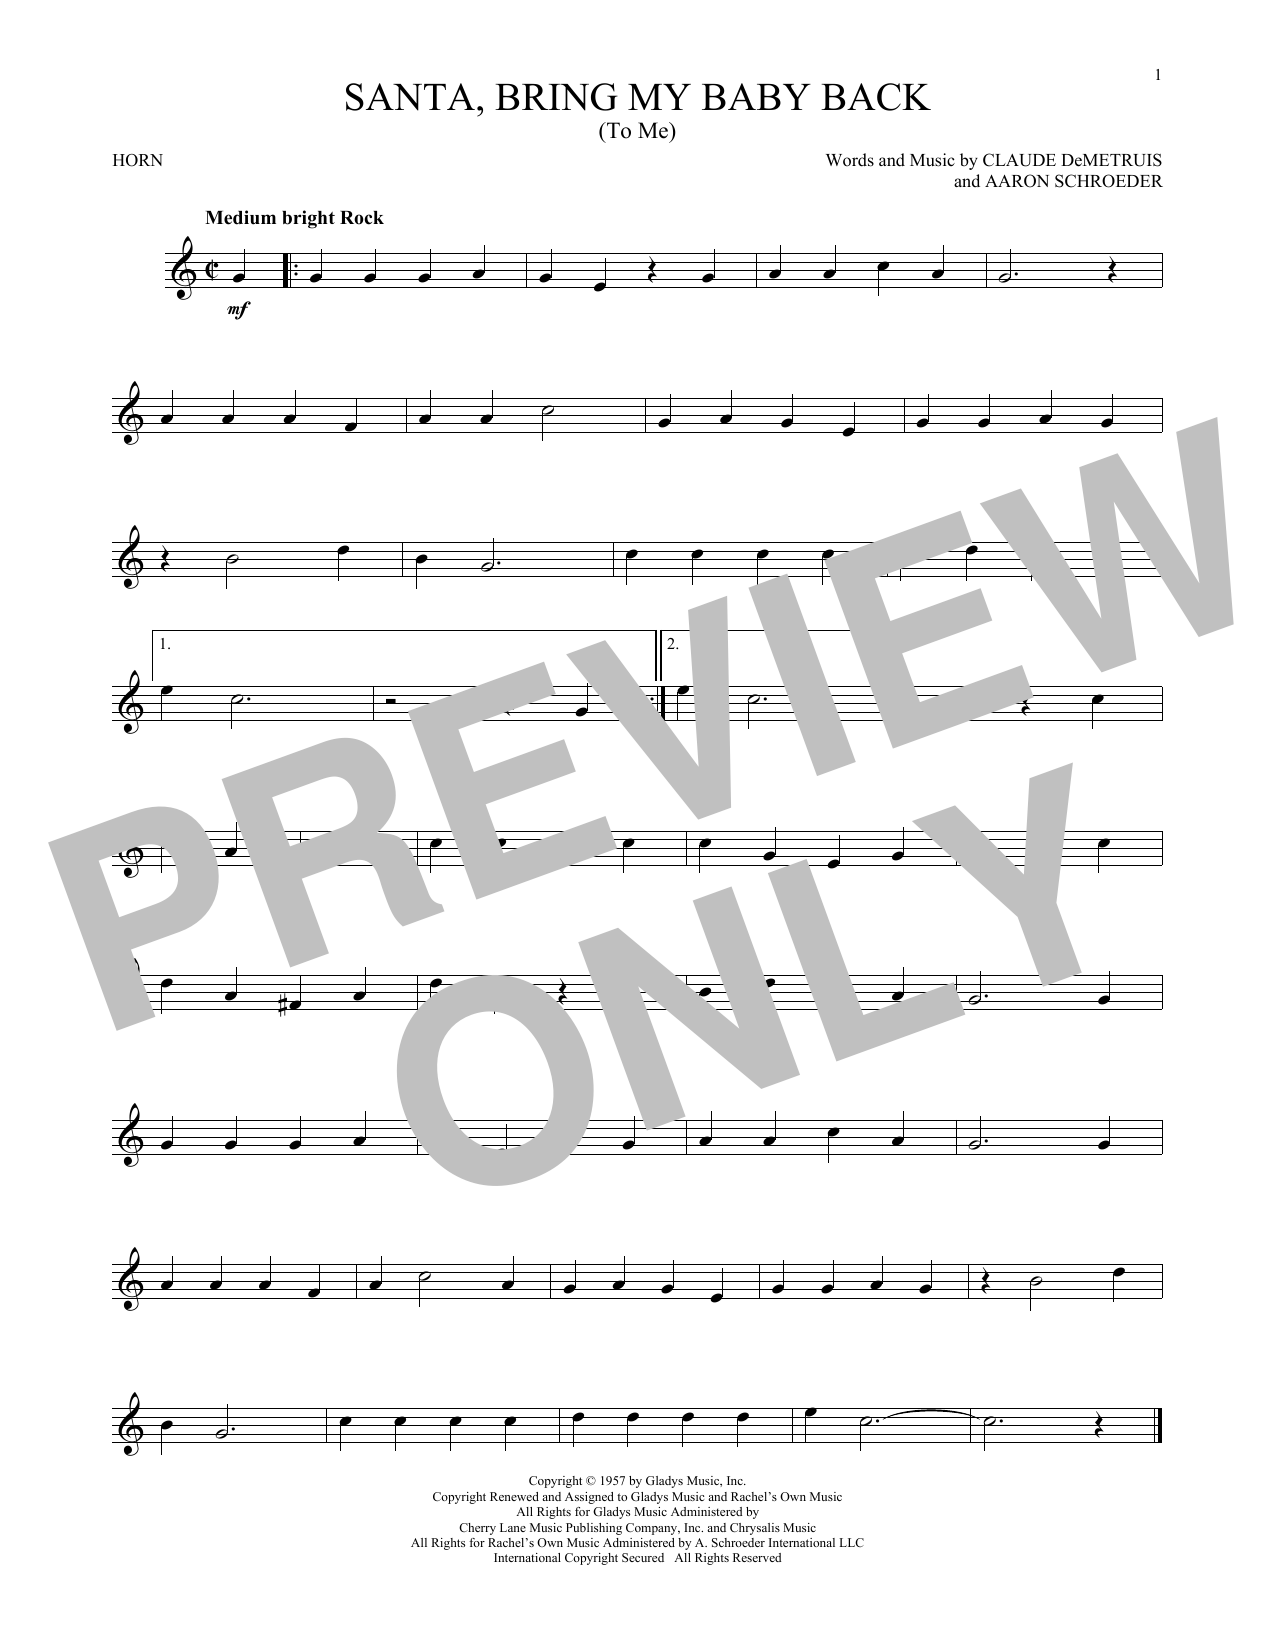 Santa, Bring My Baby Back (To Me) (French Horn Solo)